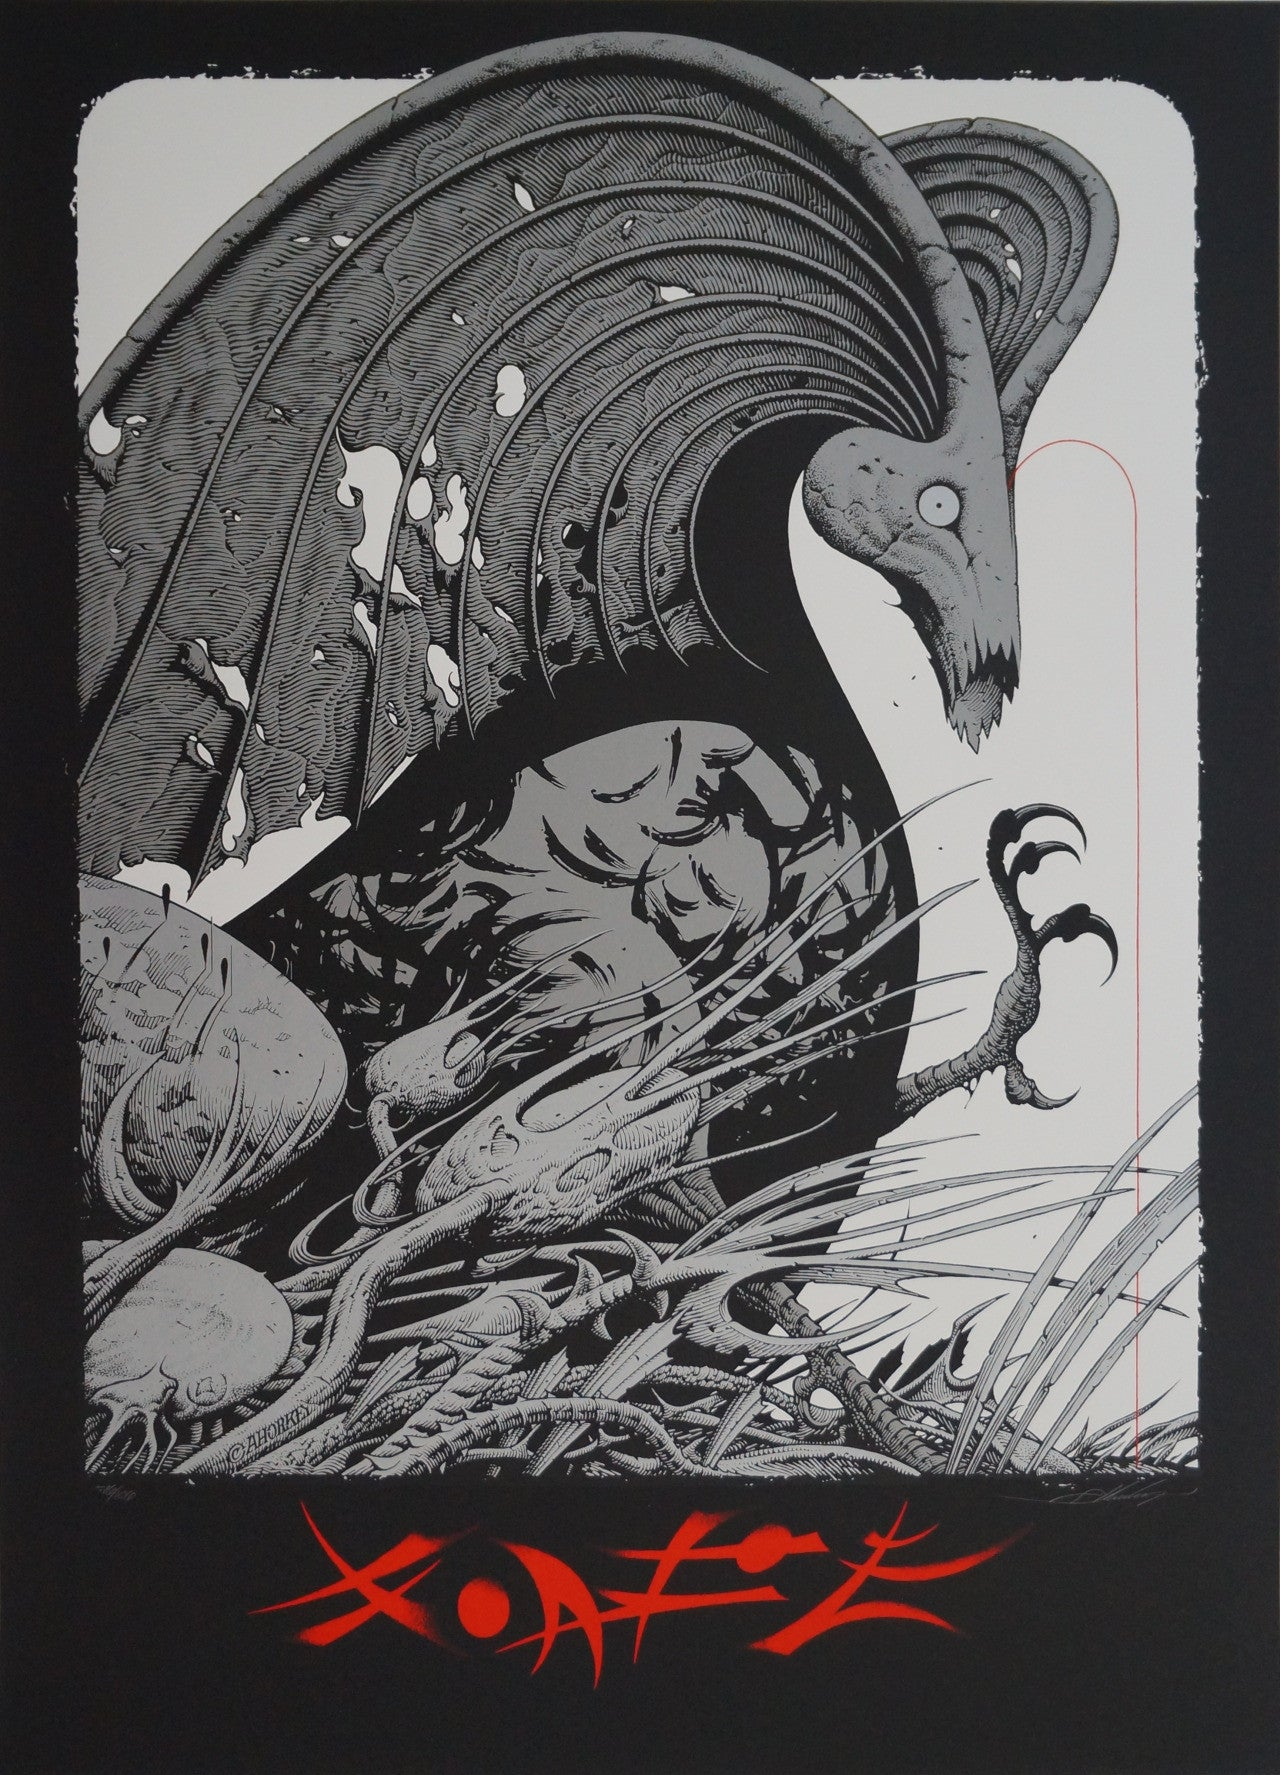 FANTASTIC PLANET (variant) by Aaron Horkey